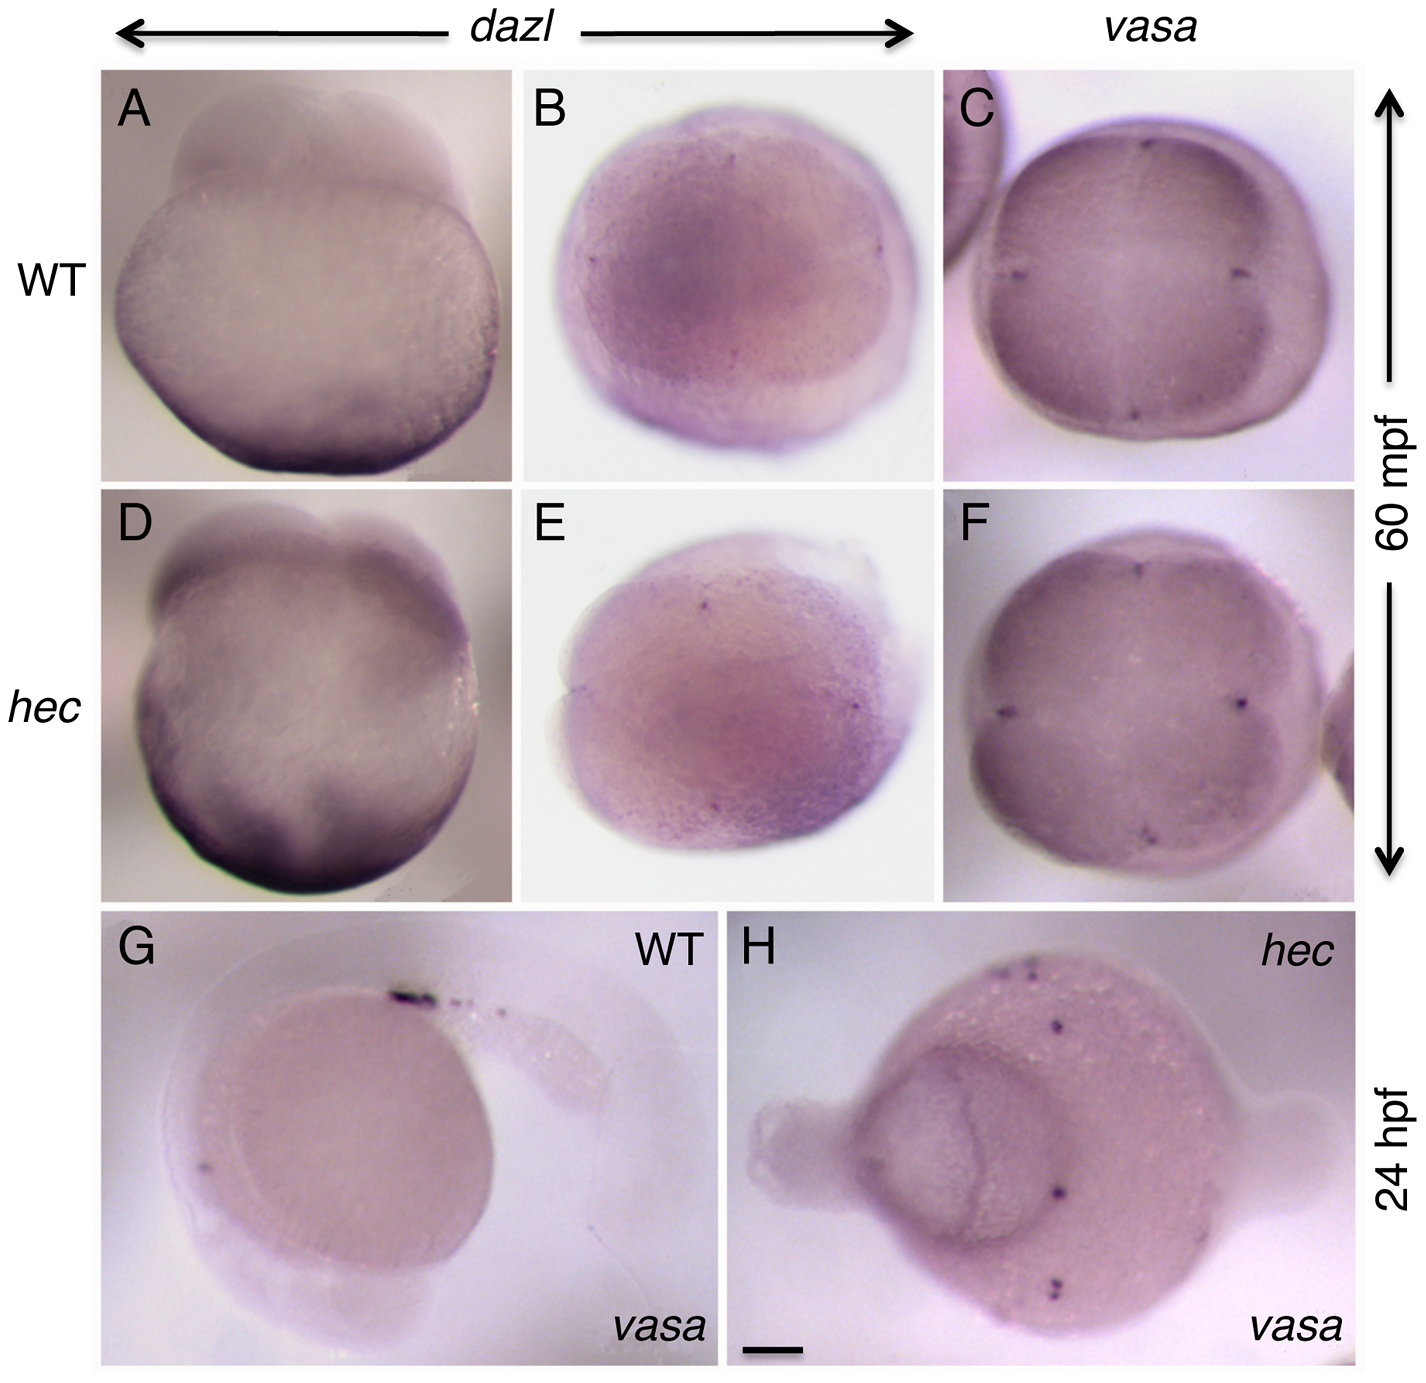 Germ plasm recruitment and PCG determination appears unaffected in <i>hecate</i> mutants.